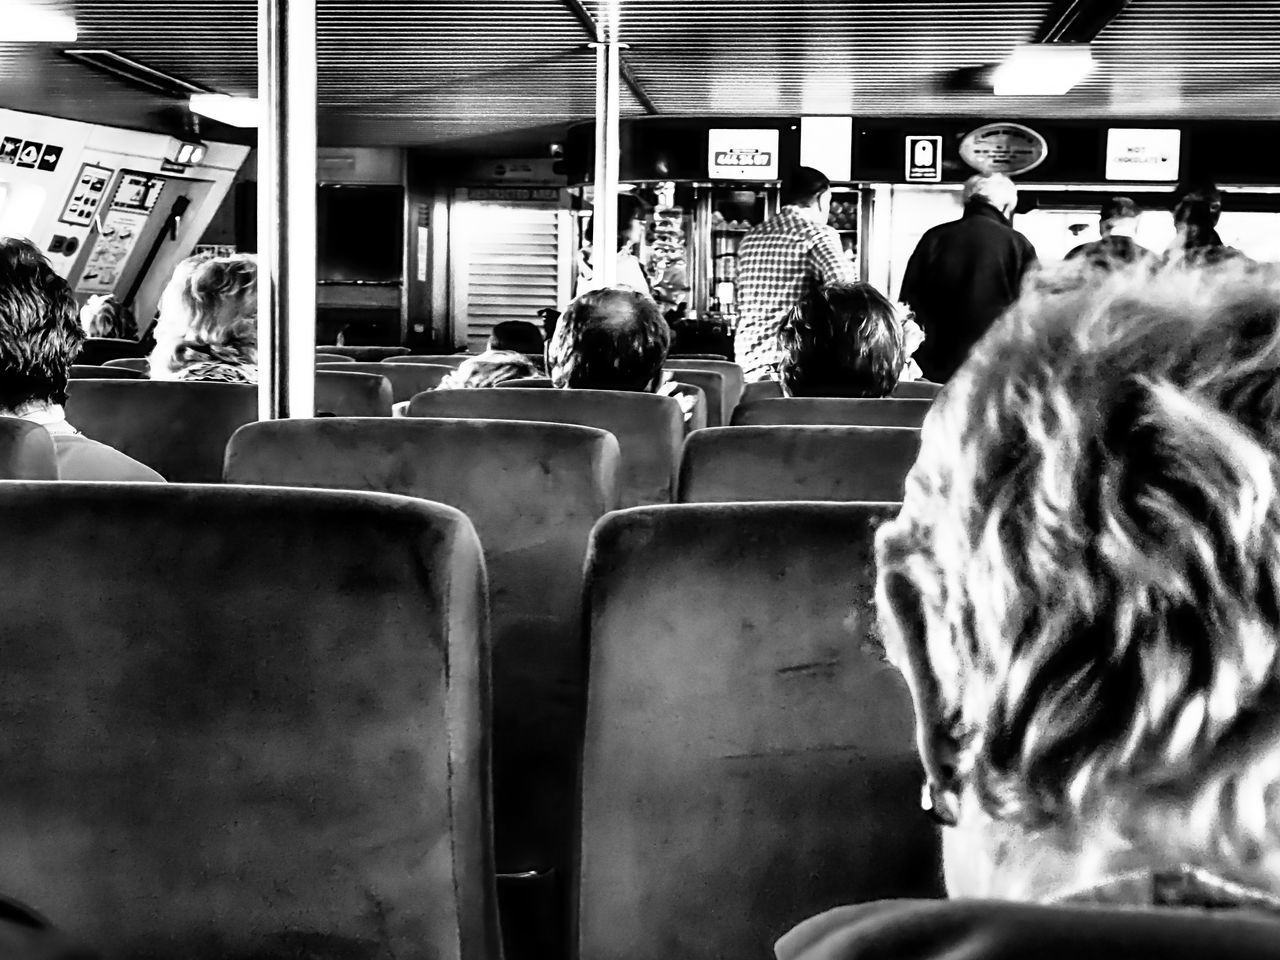 rhodes greek and izmir turkey Adult Day Indoors  Journey Land Vehicle Mode Of Transport Passenger People Public Transportation Rear View Train Interior Transportation Vehicle Interior Vehicle Seat